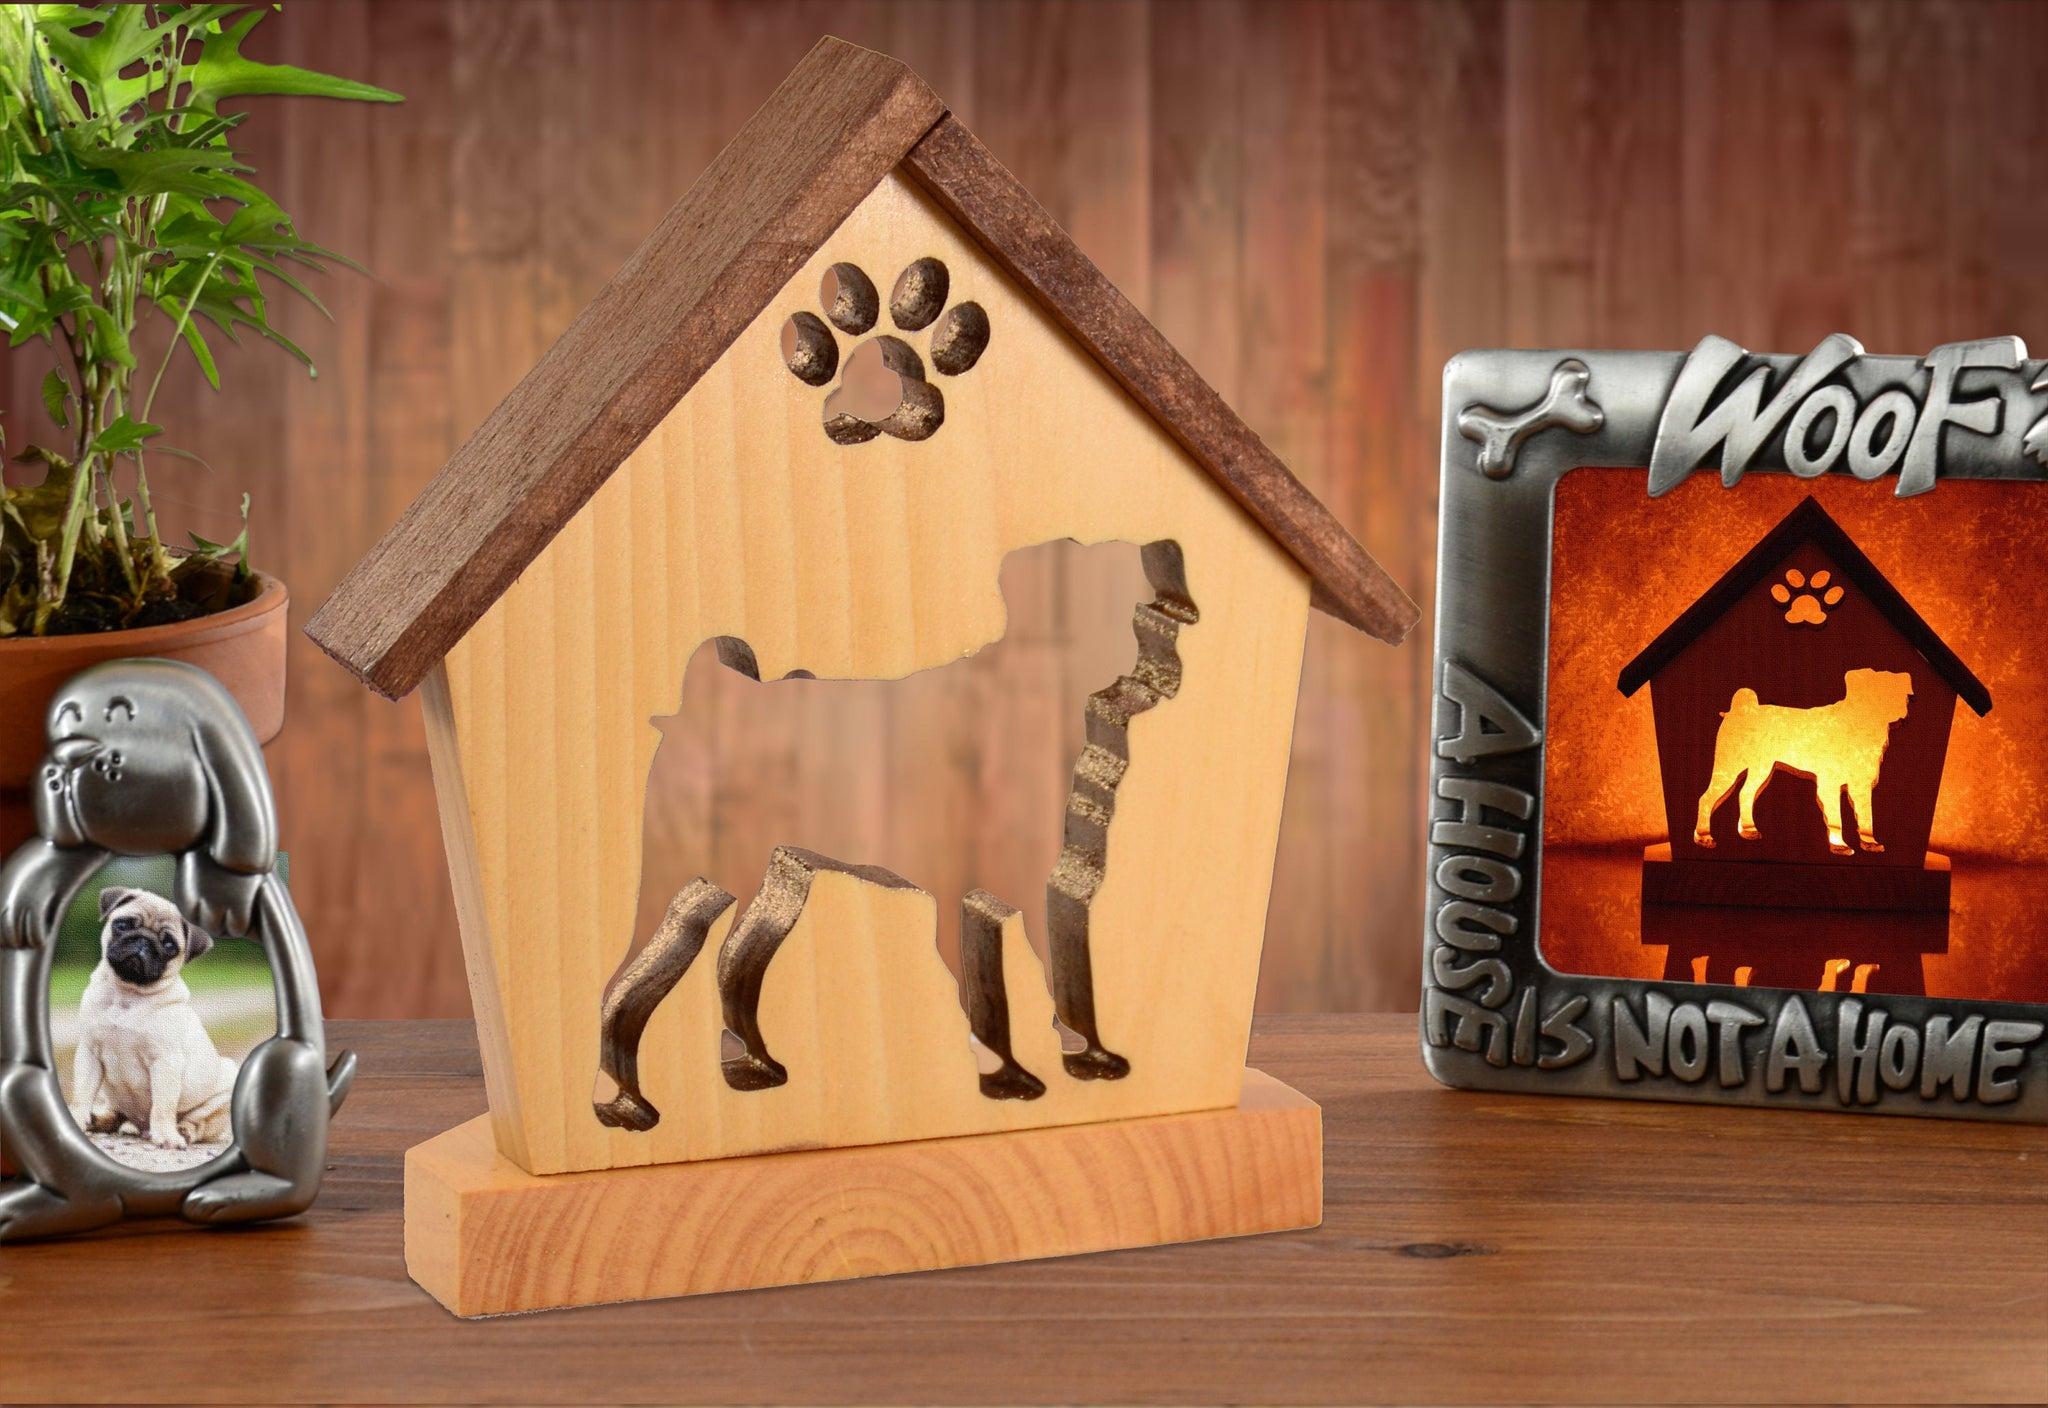 Pug Dog Memorial Keepsake Candle Holder • Personalized Gift for Dog Lovers